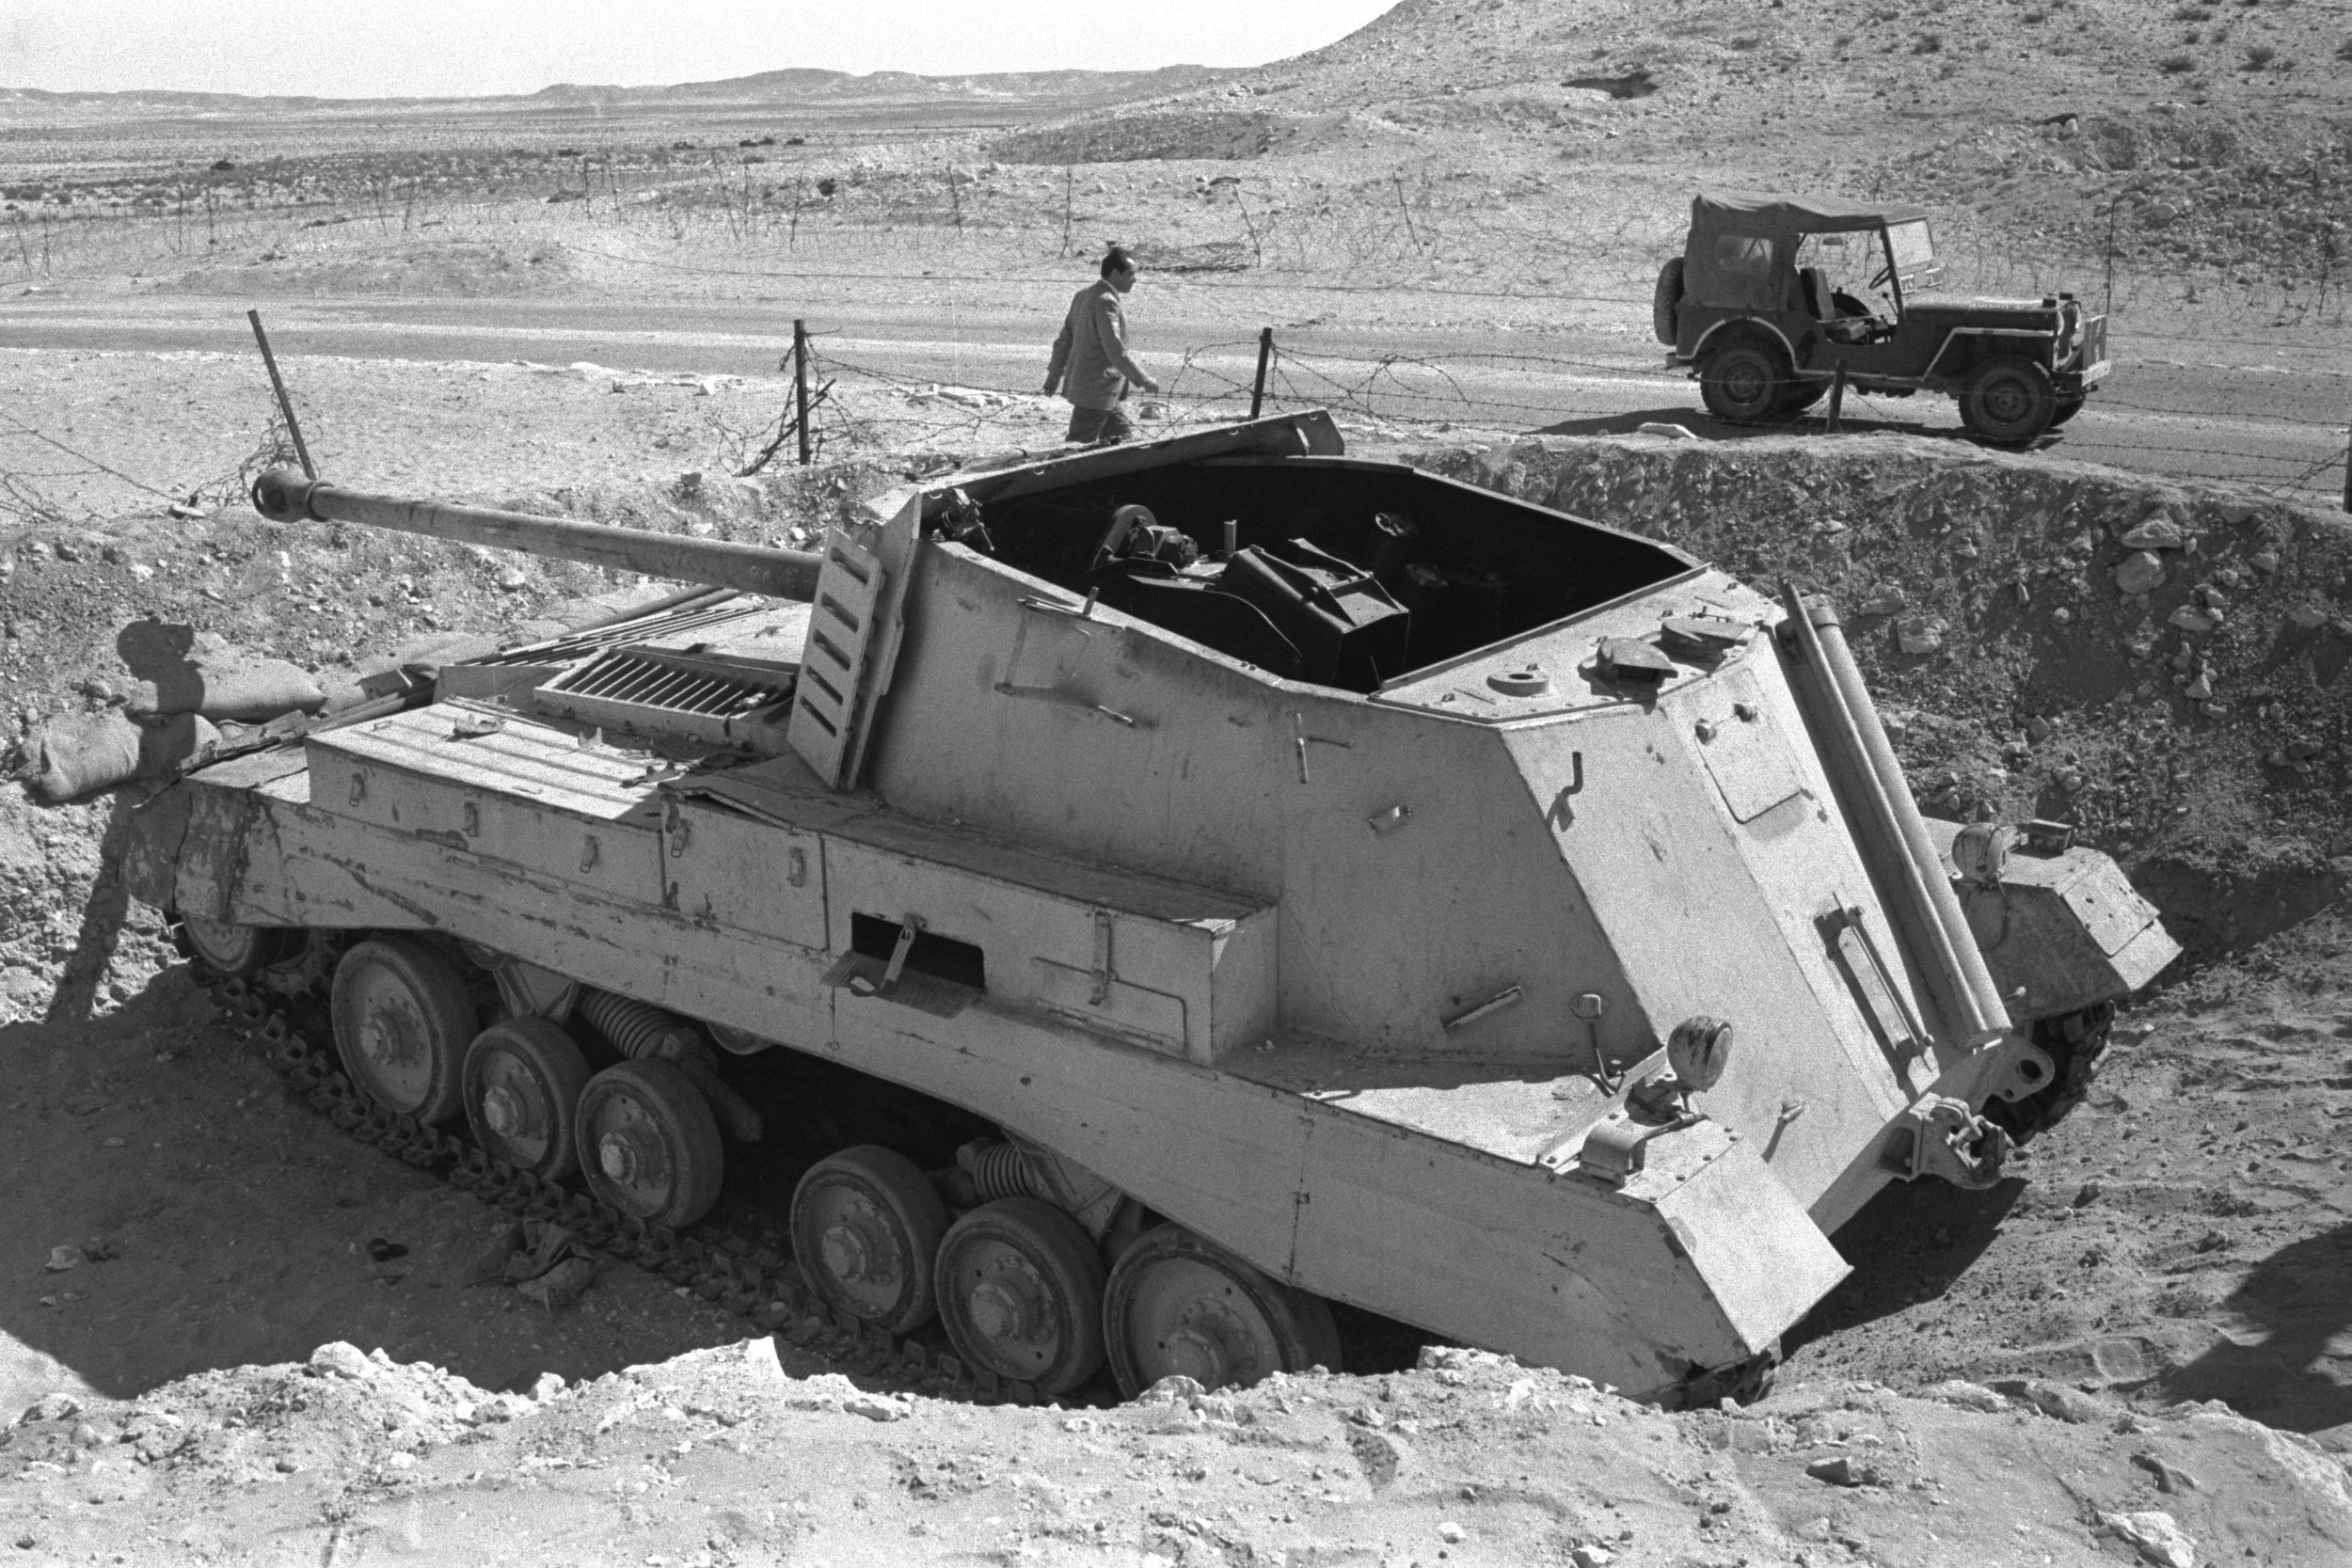 Egyptian_archer_tank_destroyer_knocked_out_by_Israeli_tanks_at_Abu_Ageila_-_1956.jpg